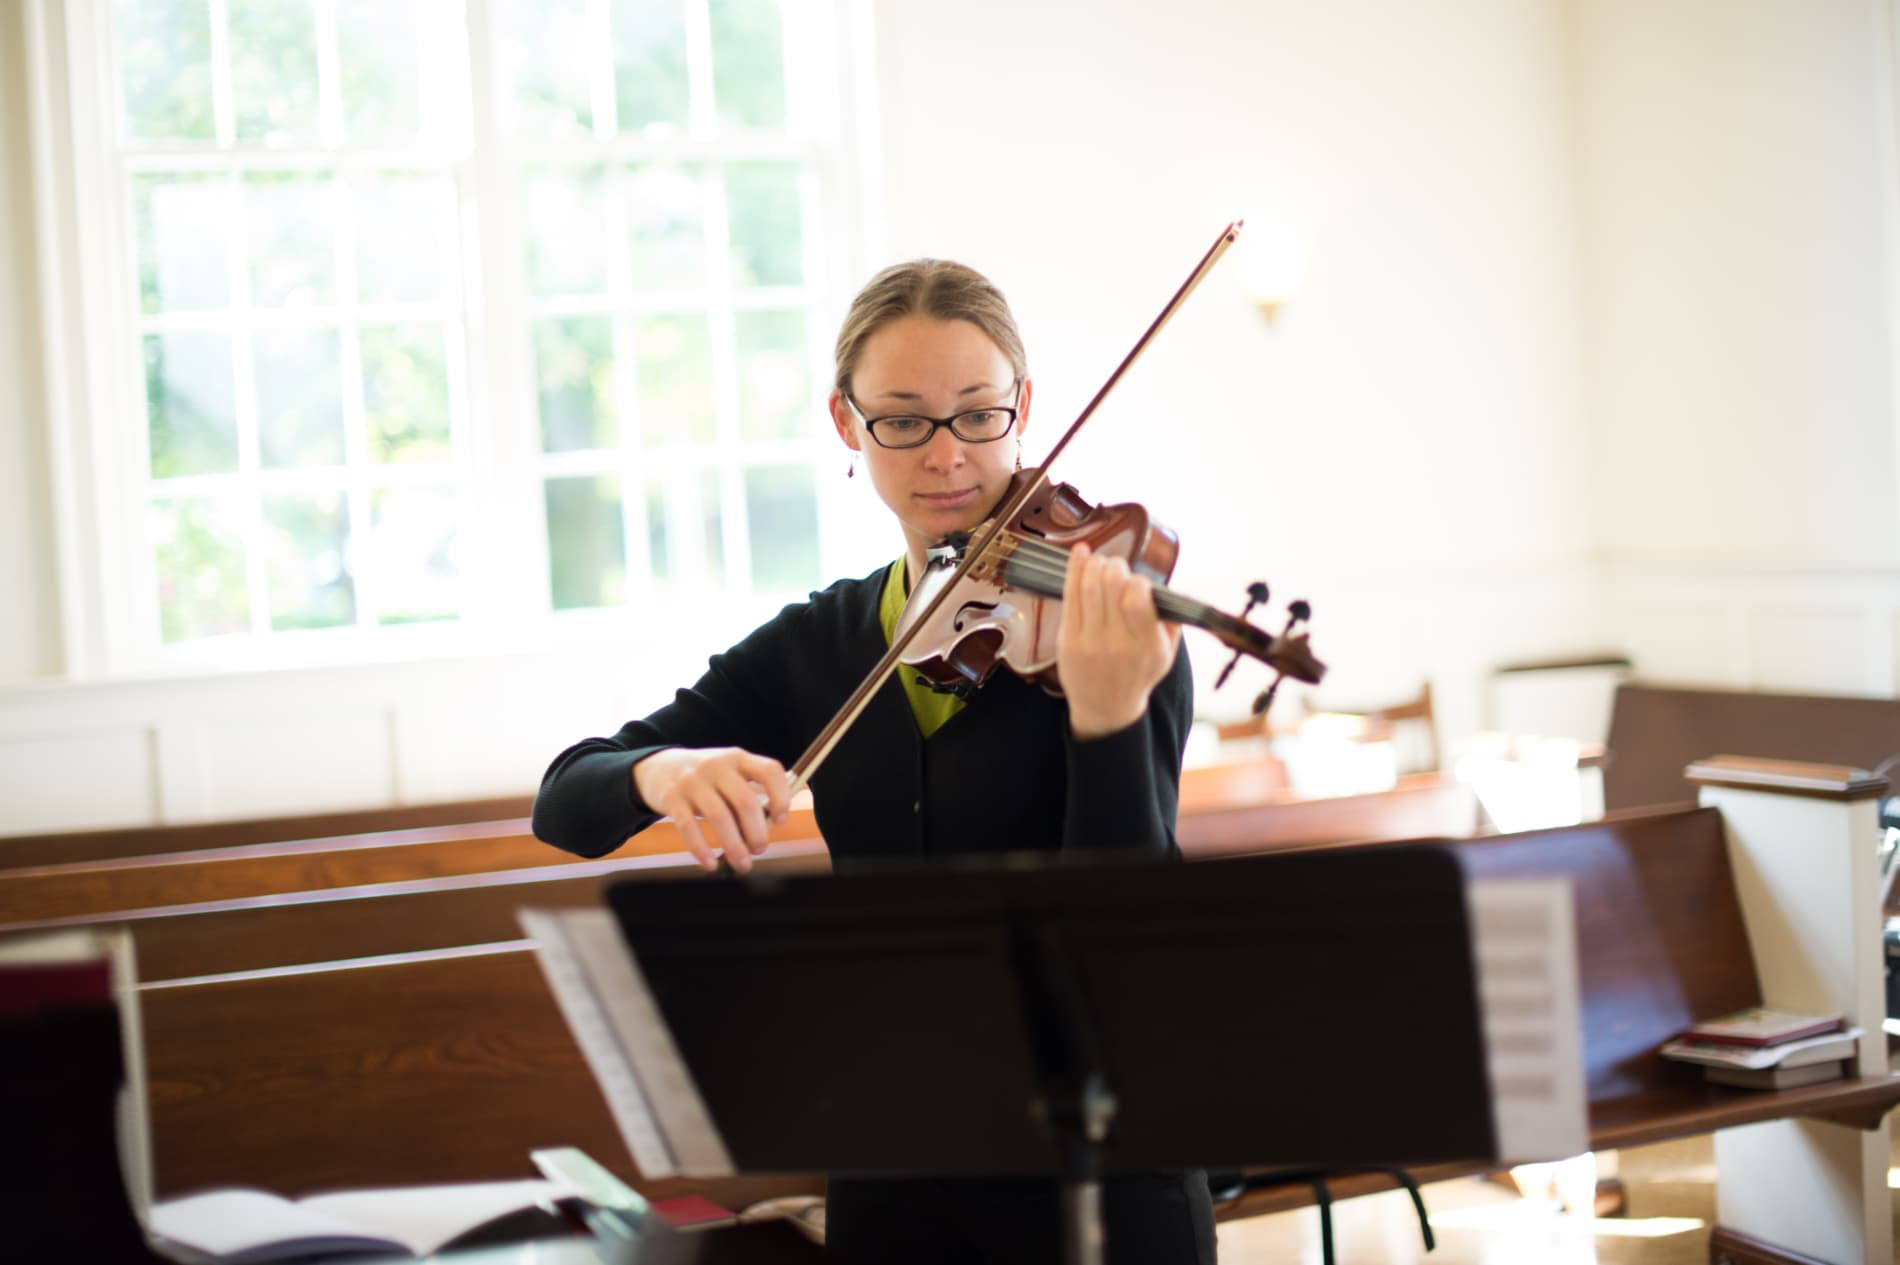 A young woman playing the violin stands in front of church pews and a bright window.